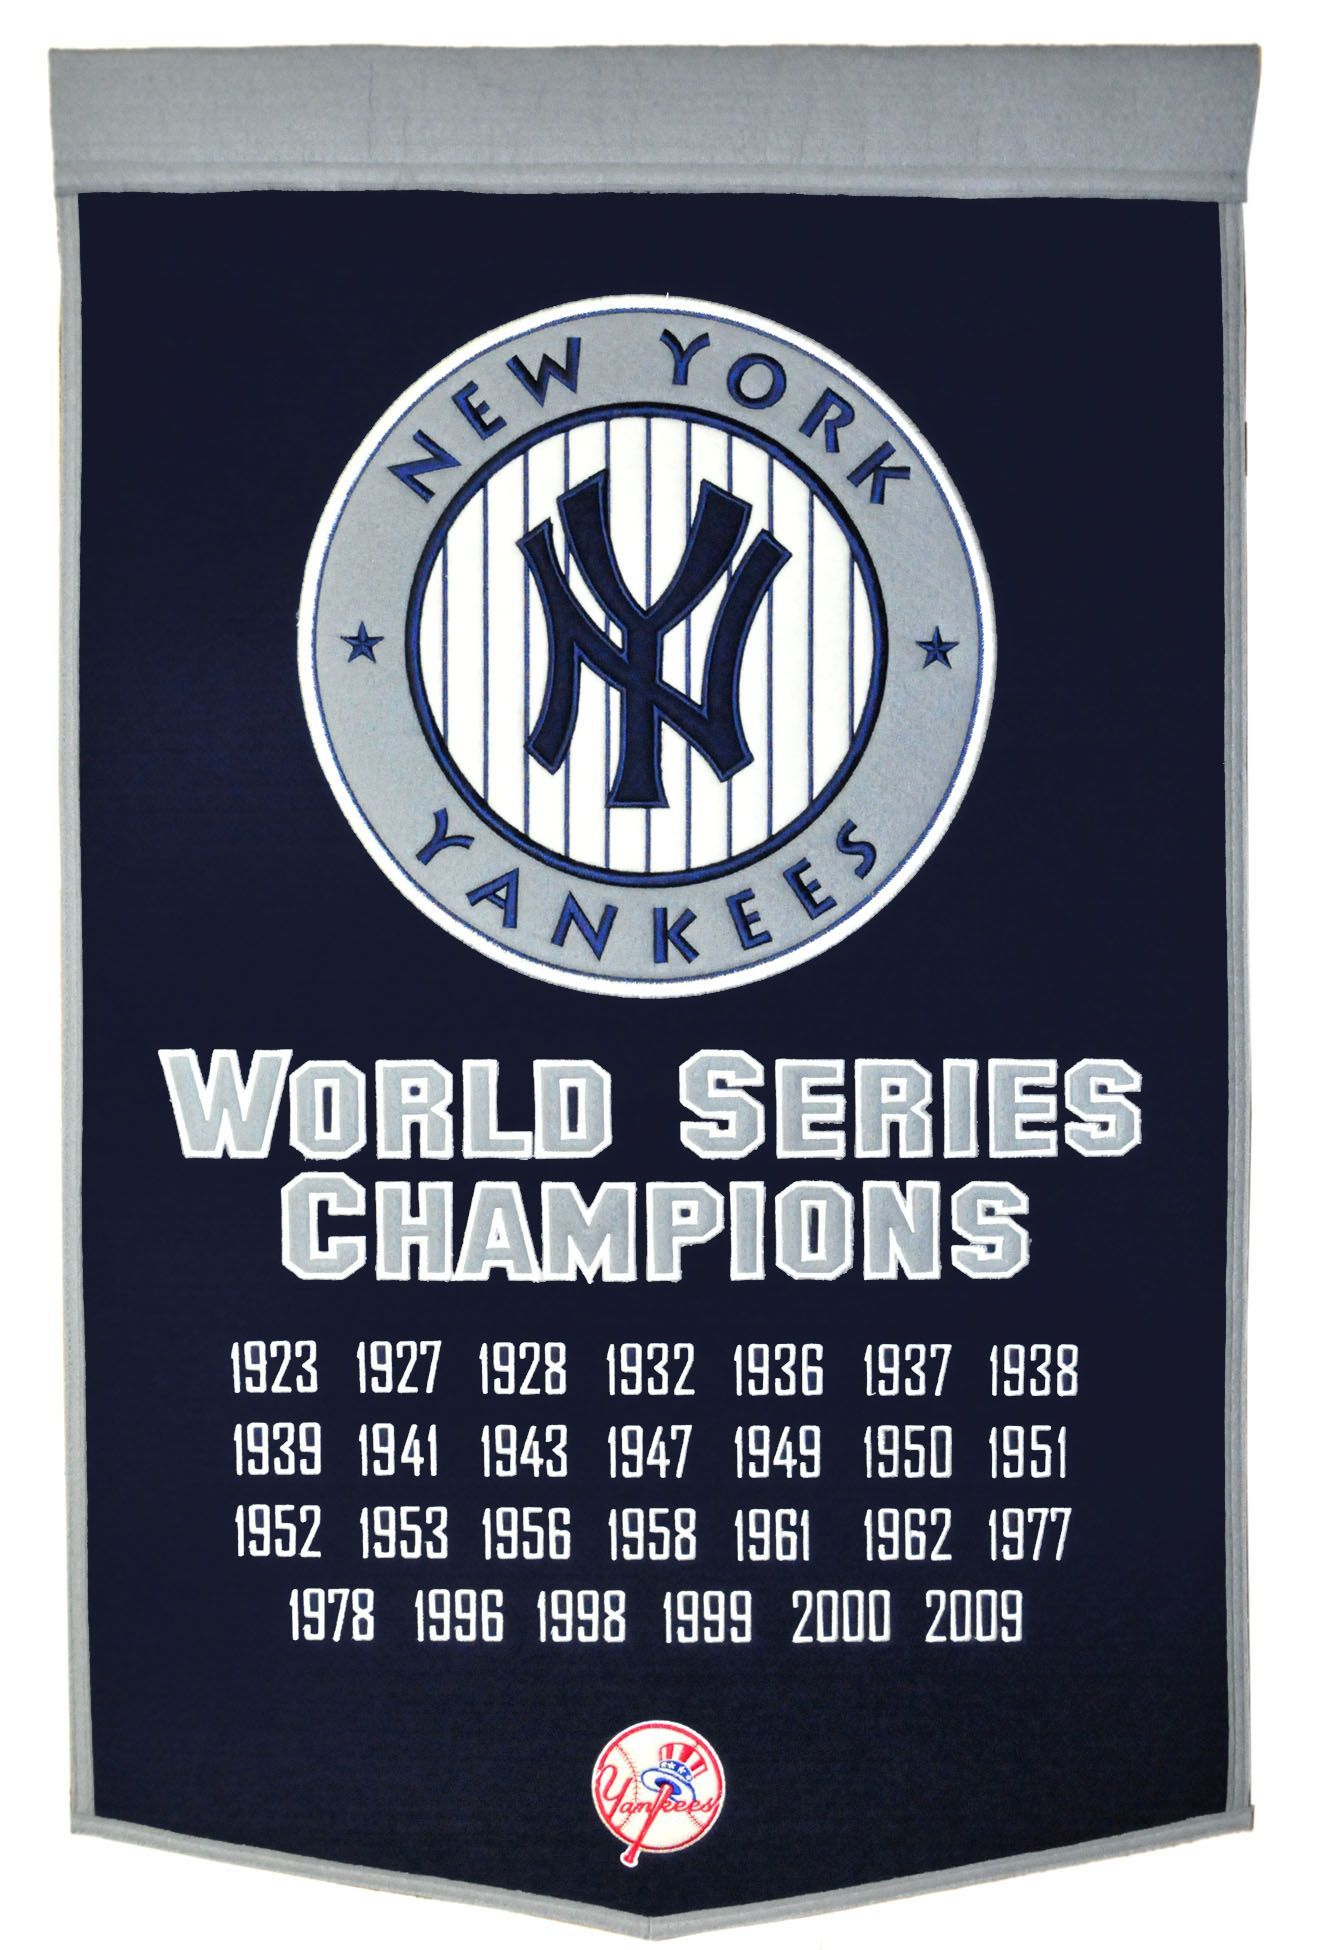 New York Yankees World Series Championship Dynasty Banner ヤンキース ロゴ ニューヨークヤンキース